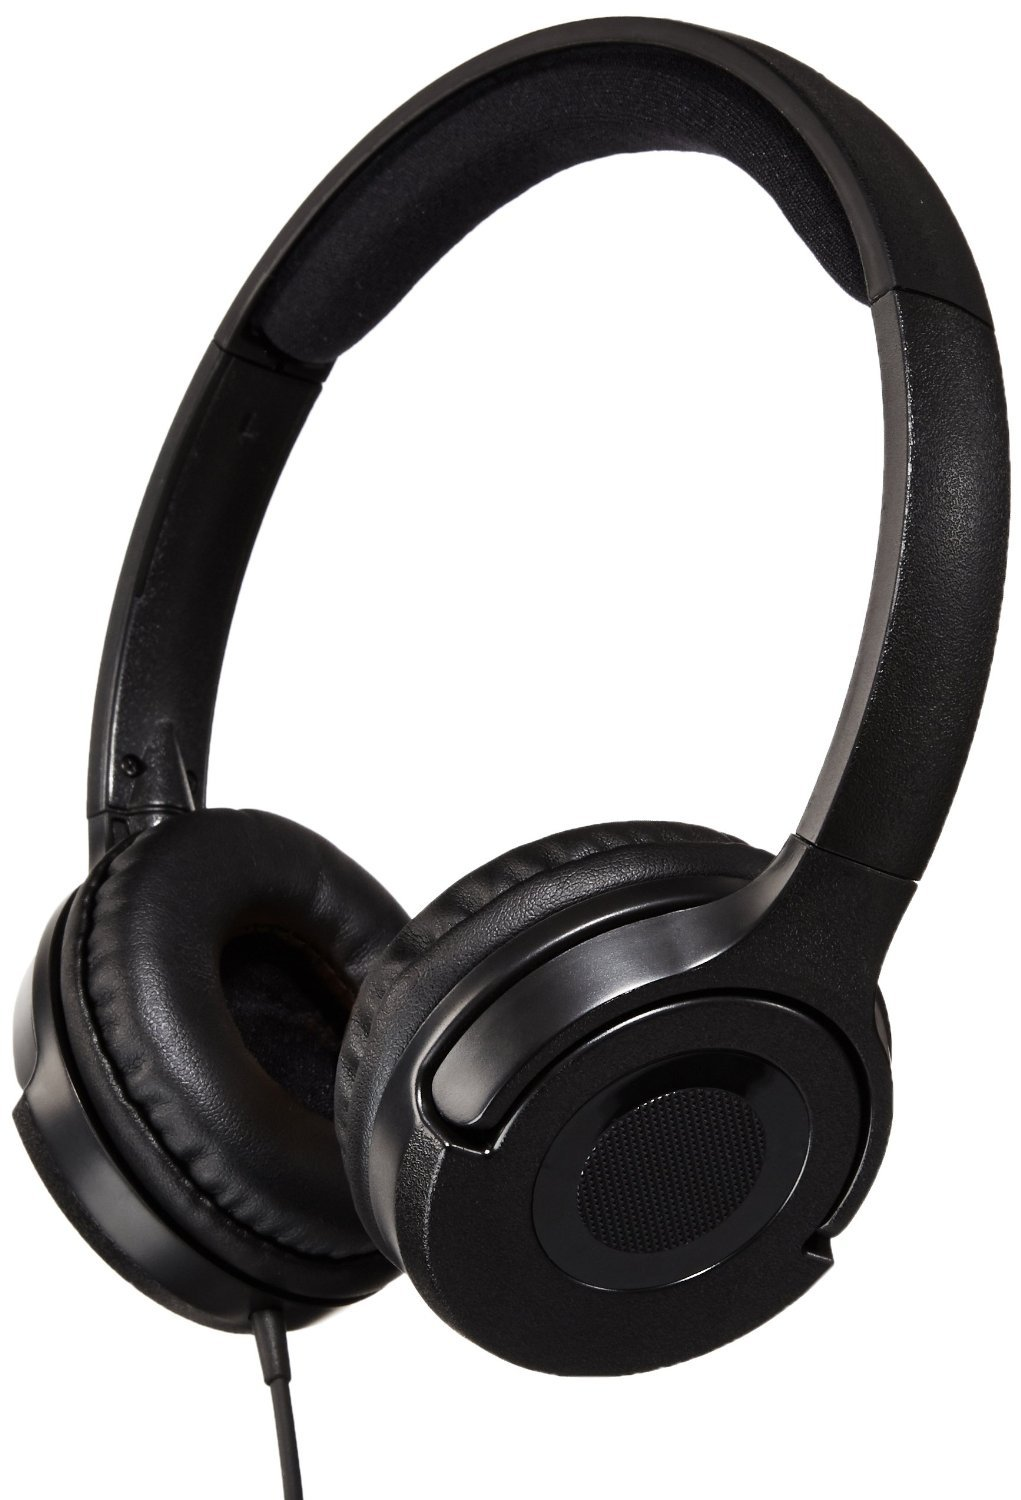 AmazonBasics Lightweight On-Ear Headphones - Black